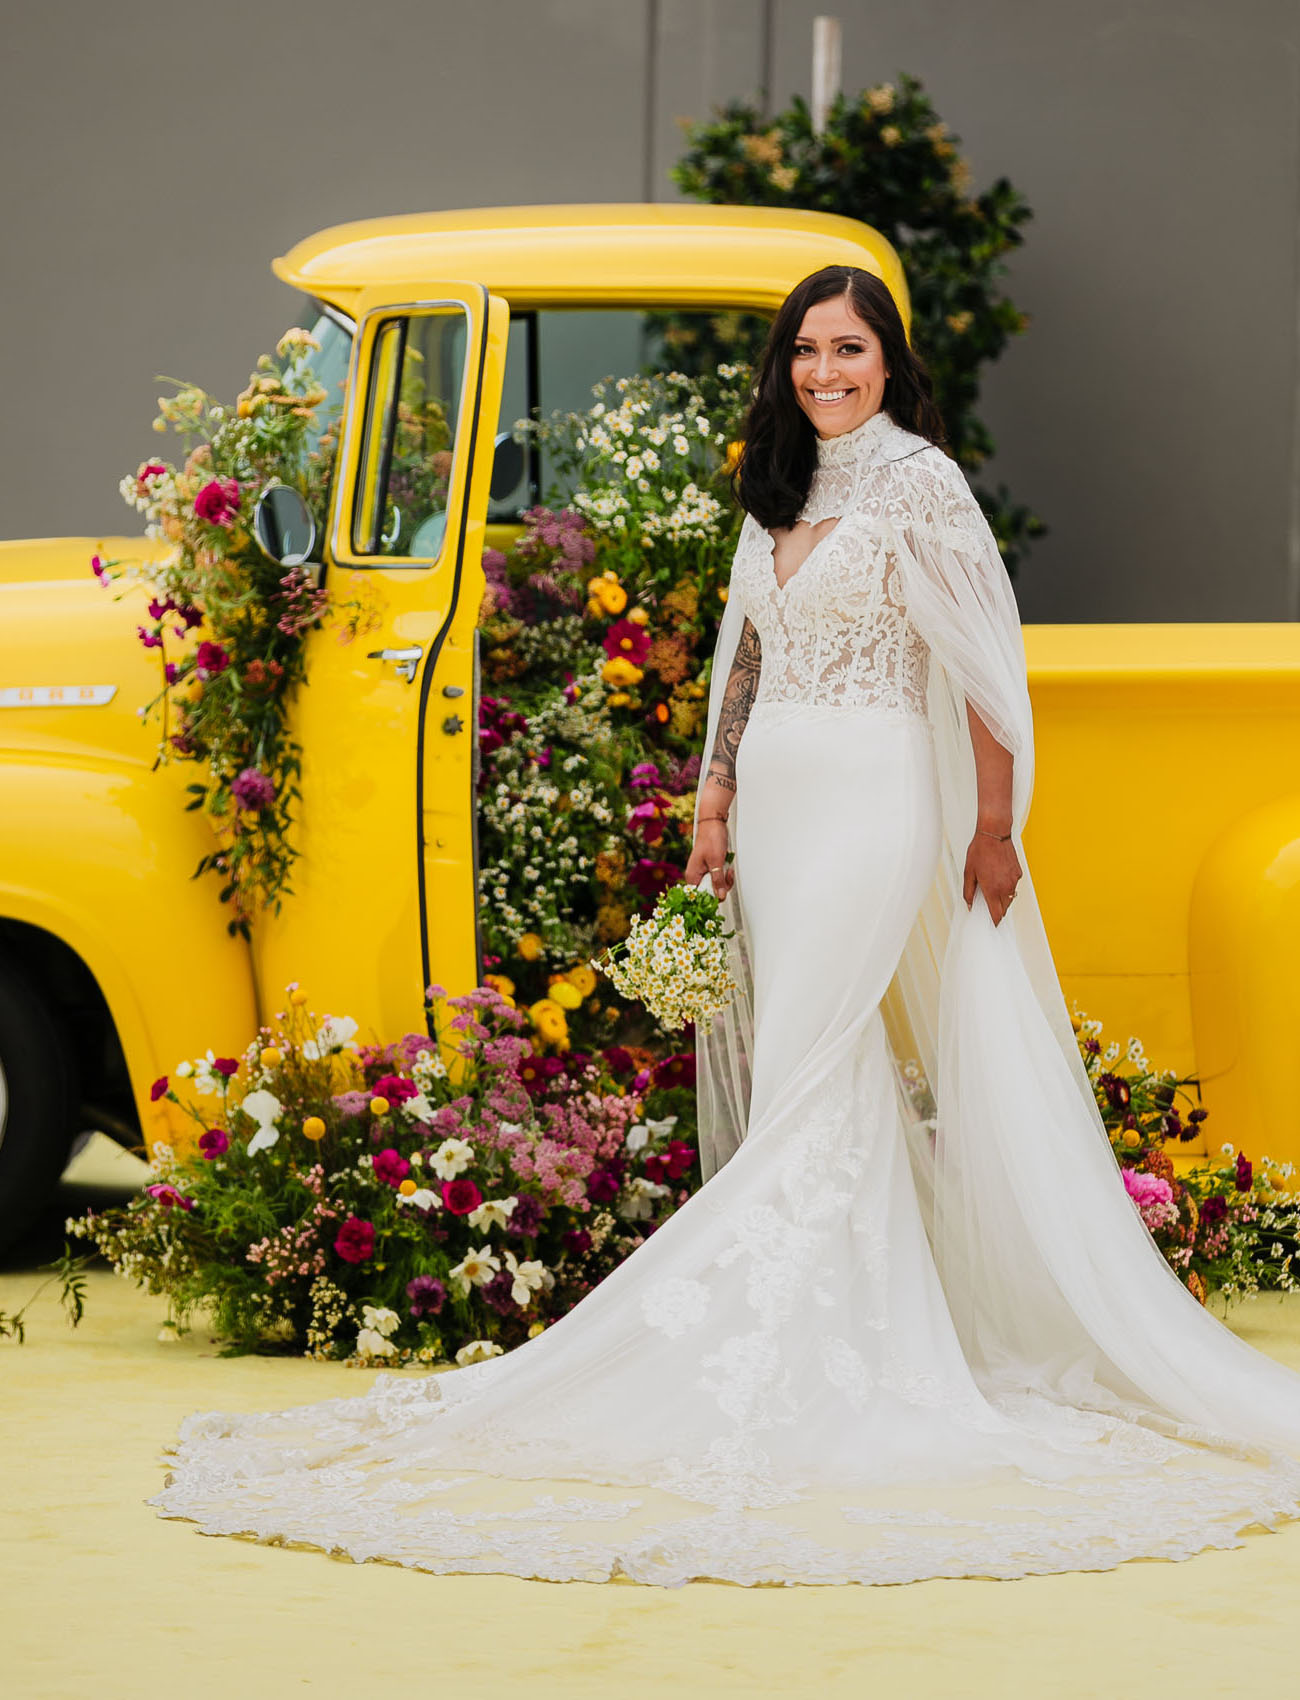 One bride was wearing a romantic mermaid wedding dress with a lace bodice and a plain skirt, a train and a capelet